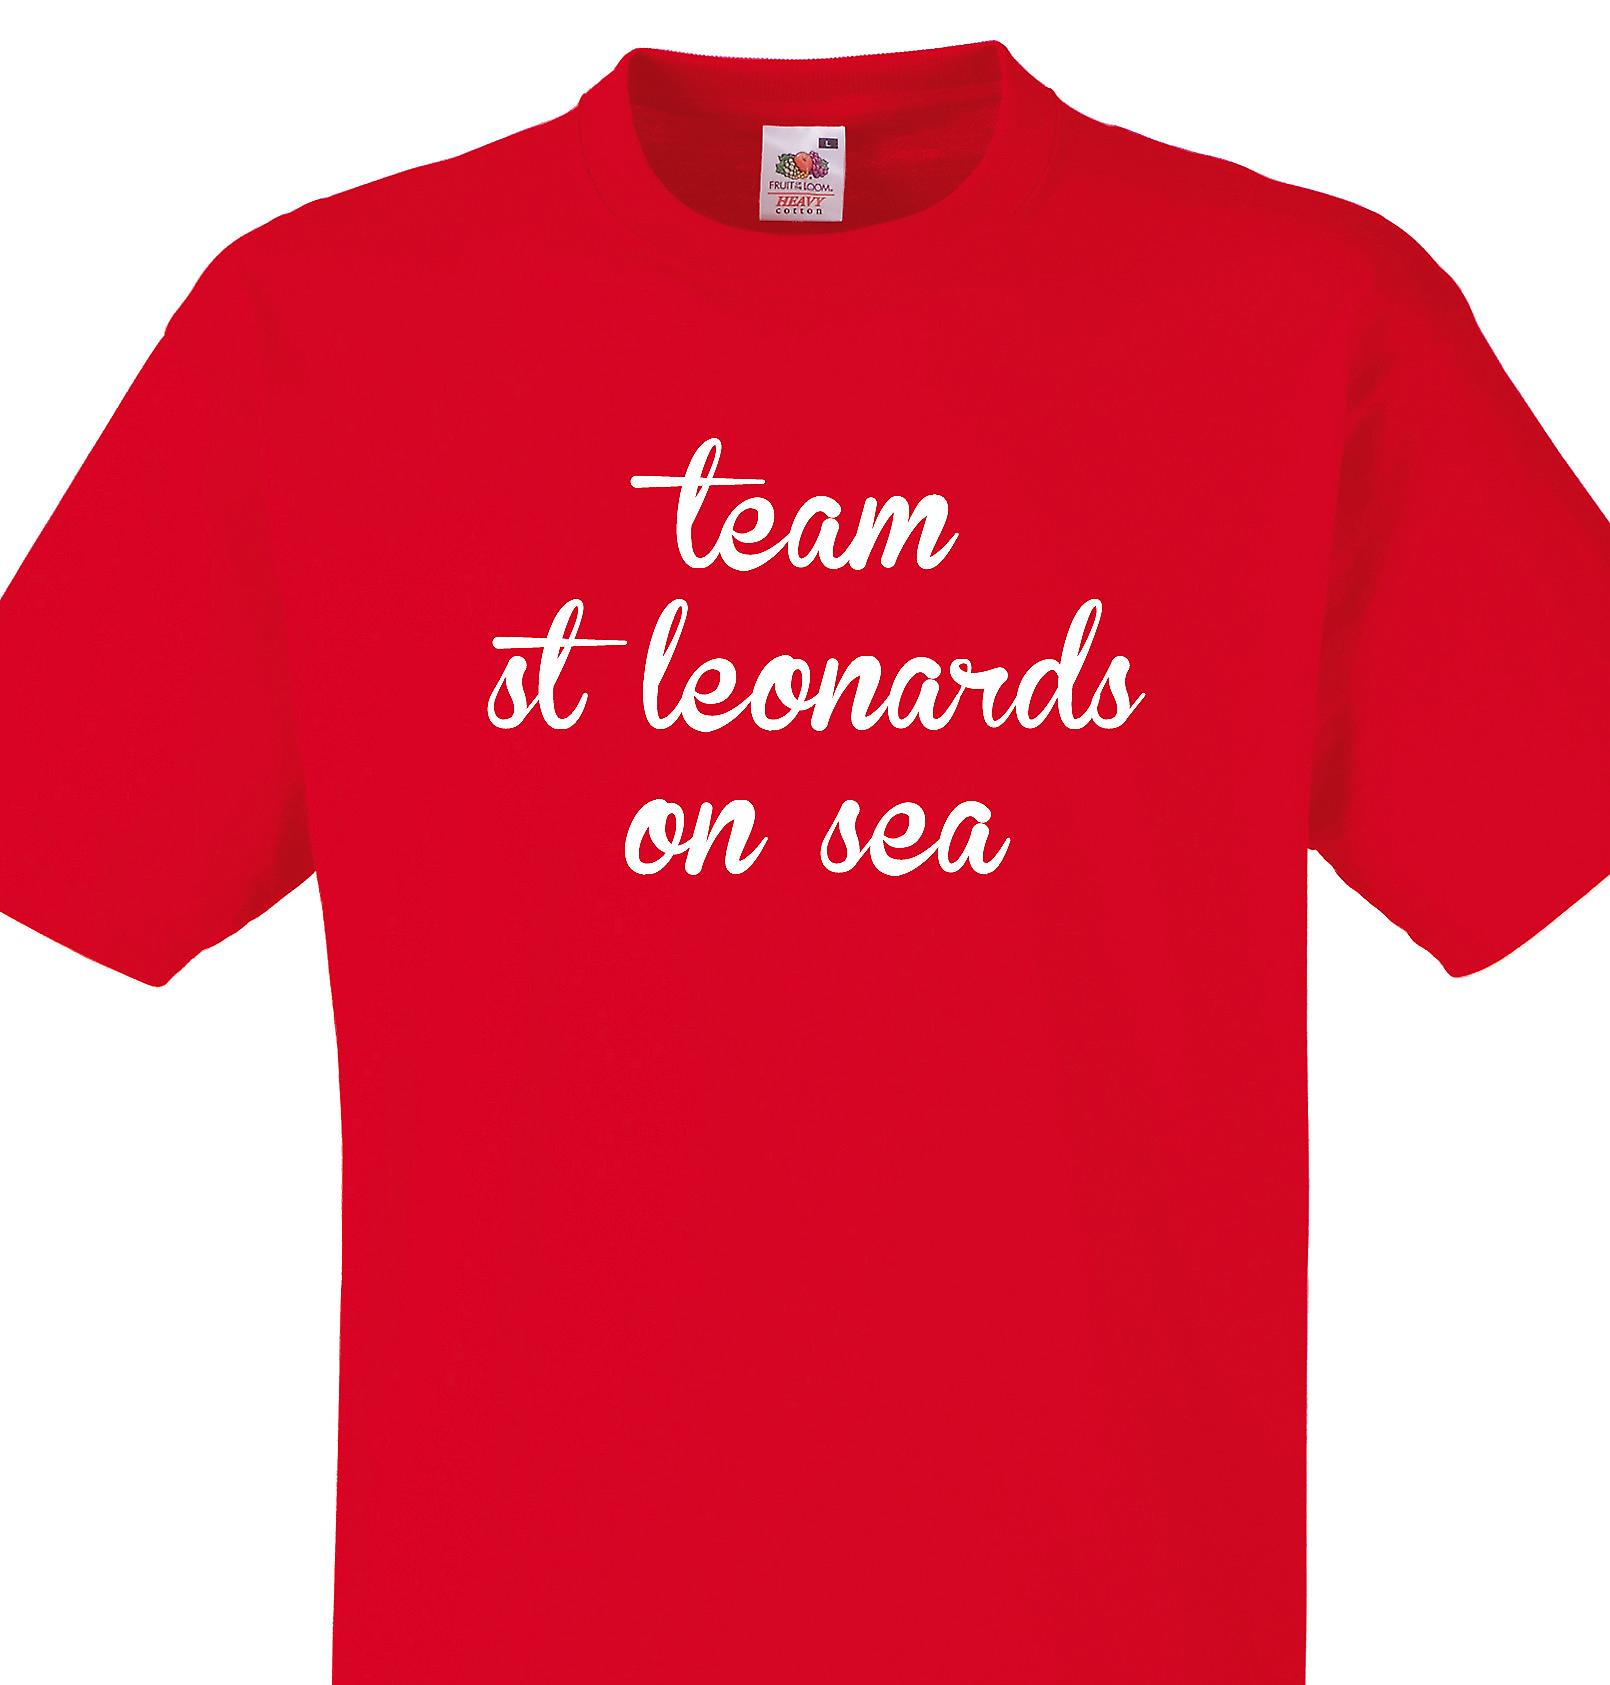 Team St leonards on sea Red T shirt